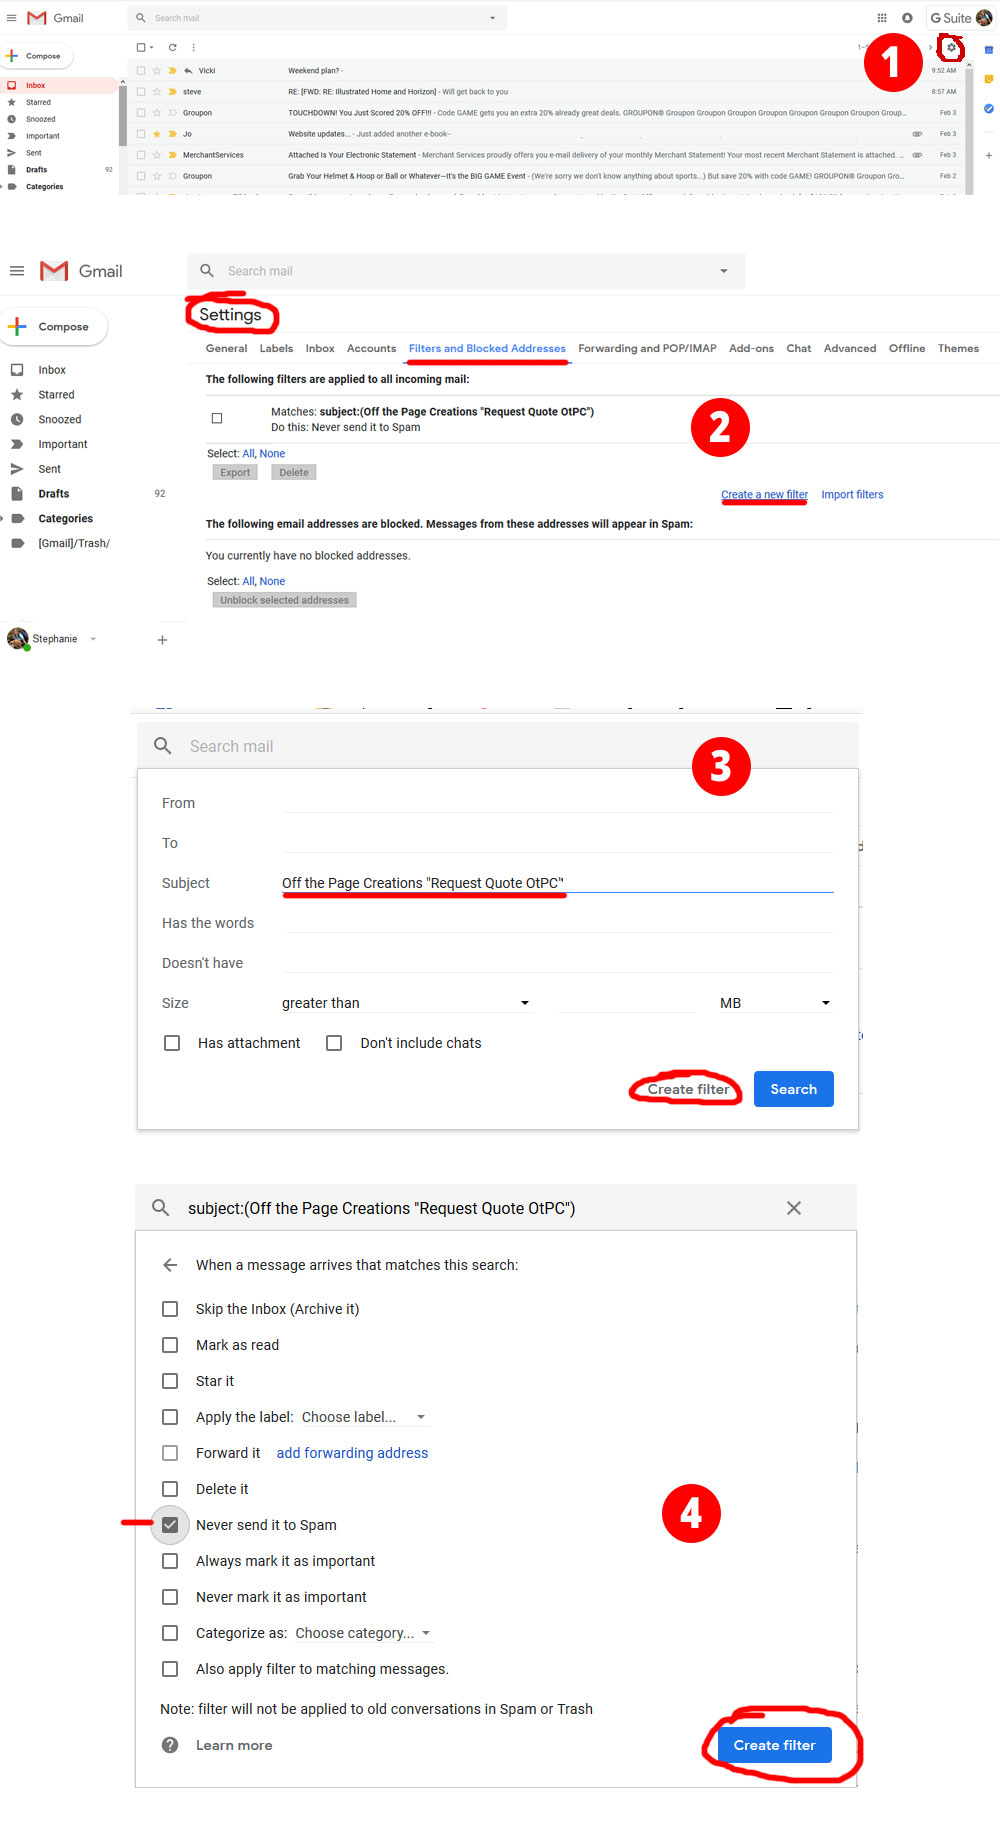 gmail add filter instructions